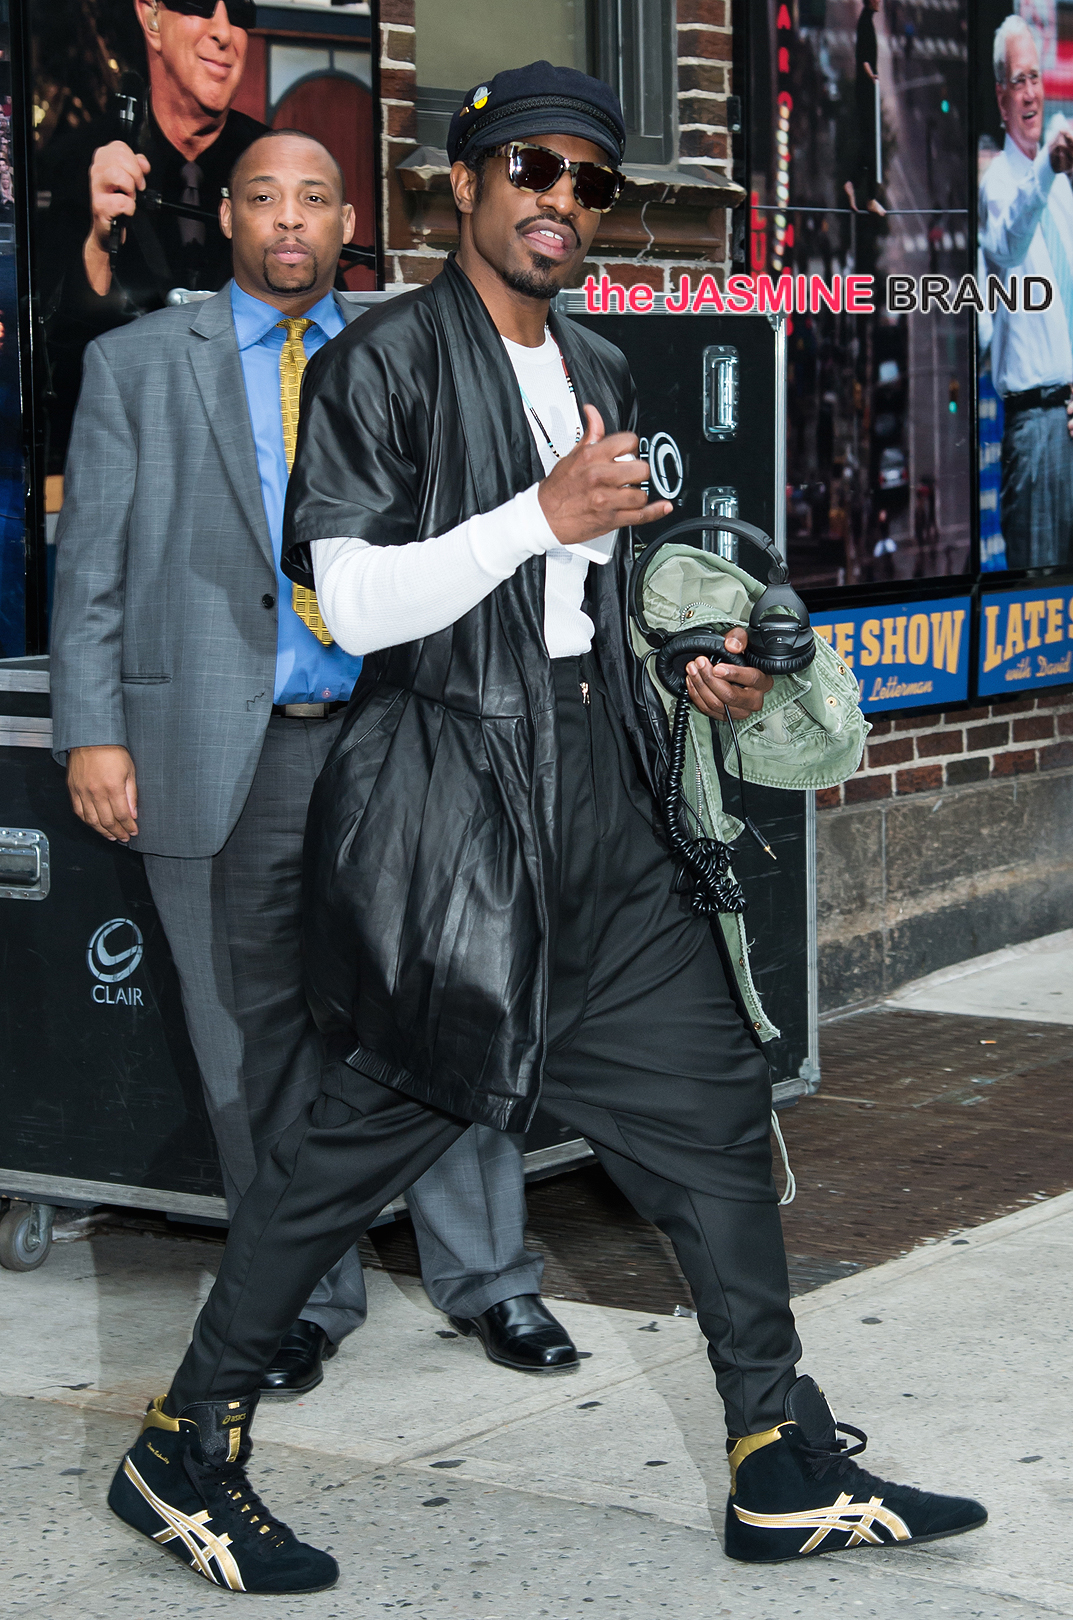 Andre 3000 and Johnny Galecki are seen leaving the 'Late Show With David Letterman' in New York